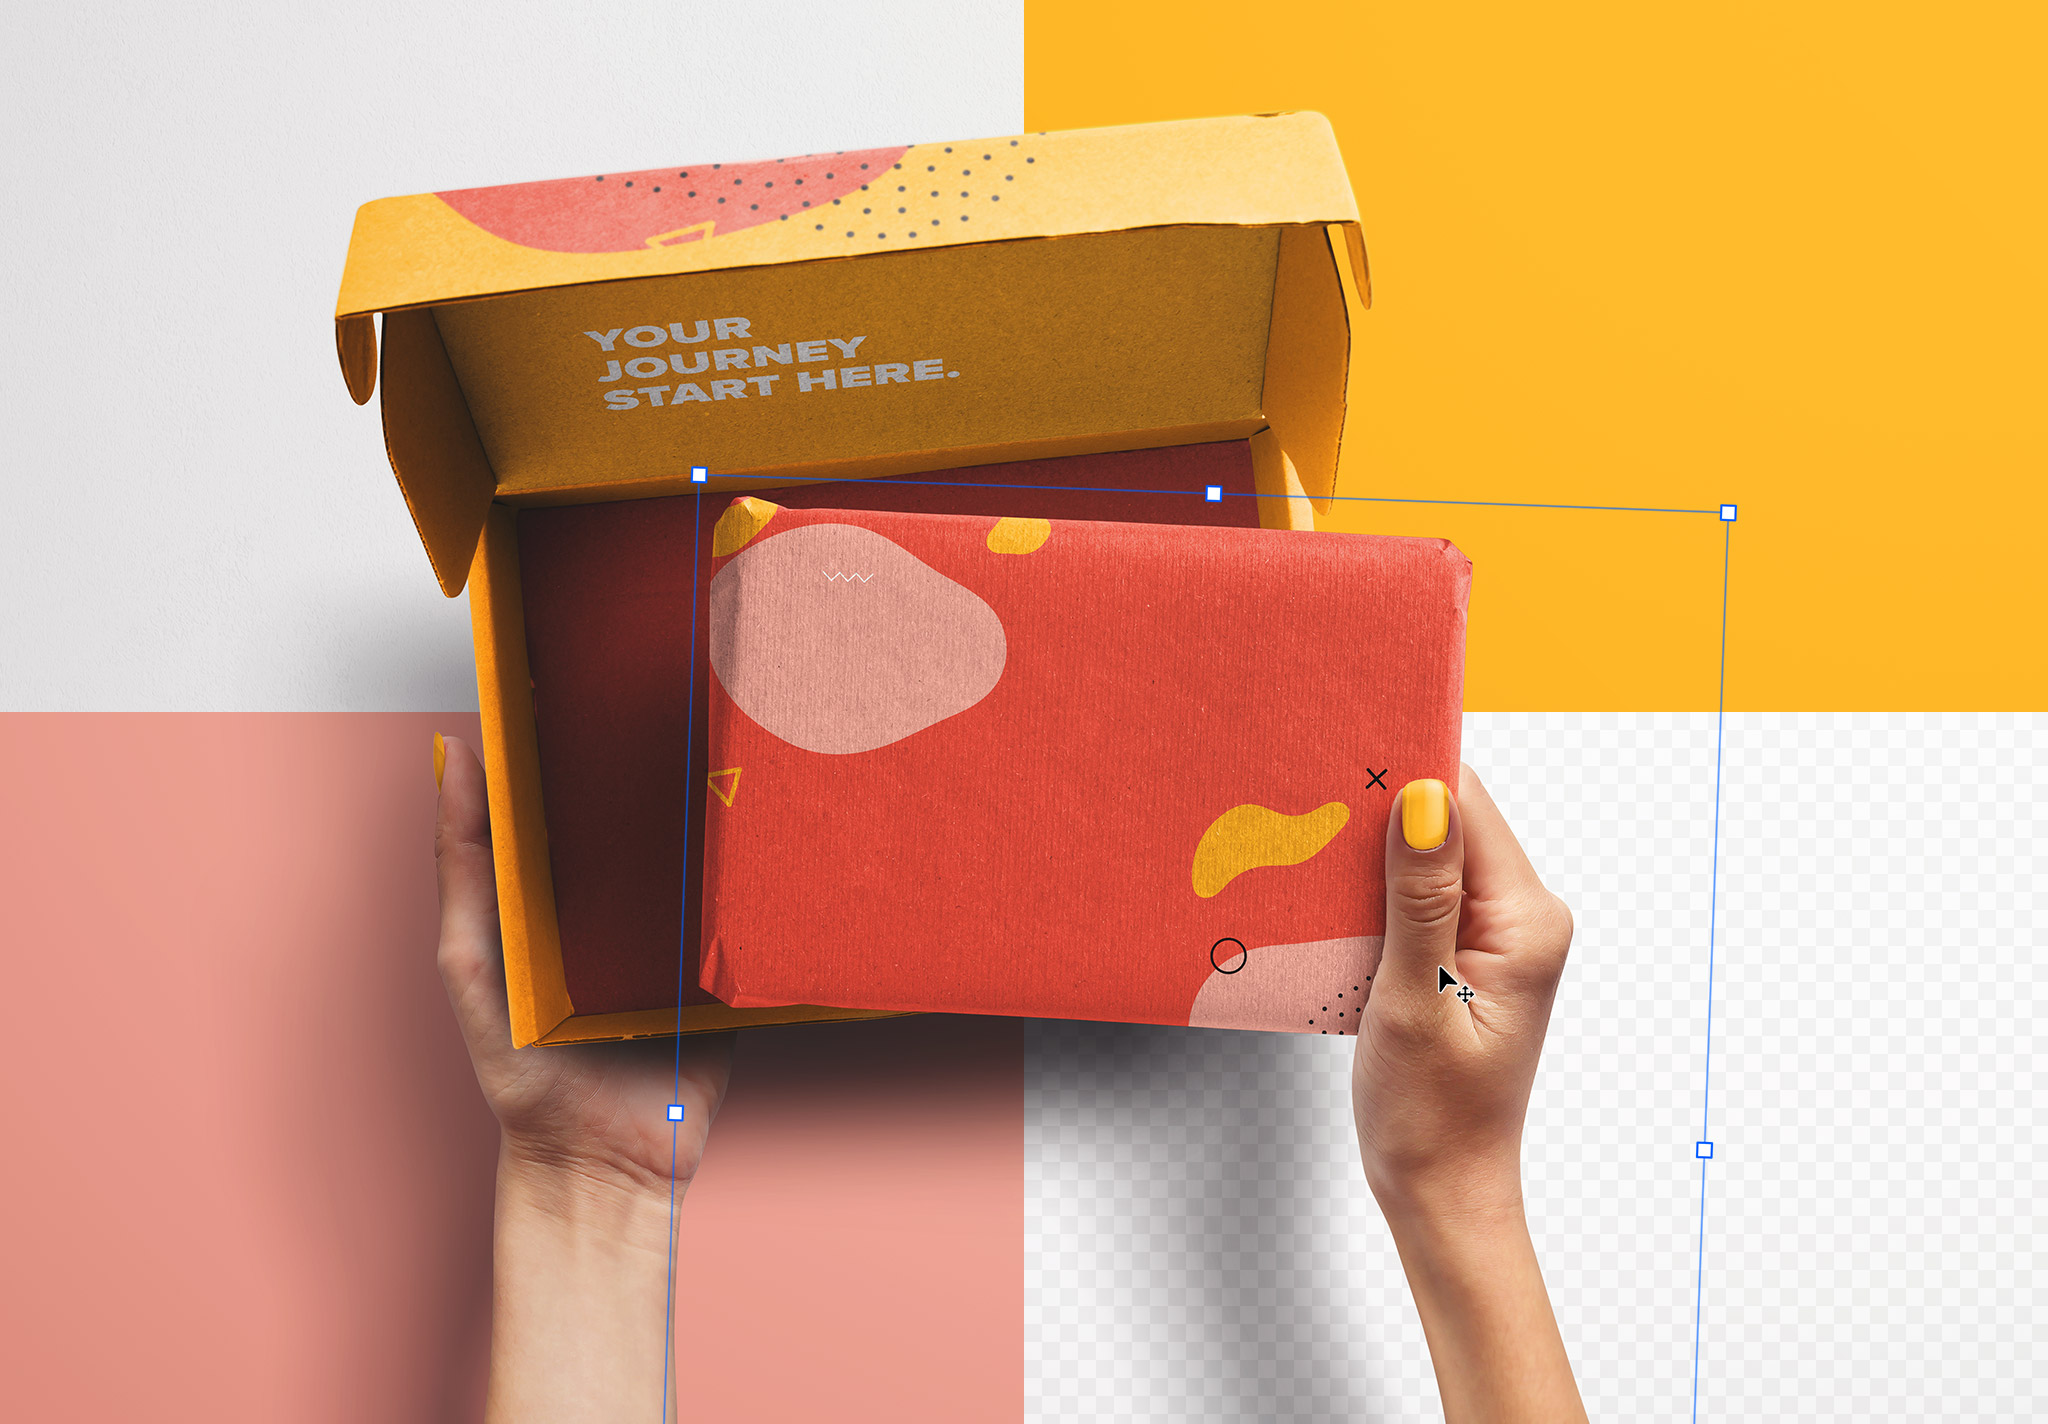 Hands Holding Opened Postal Box and Package Mockup image02